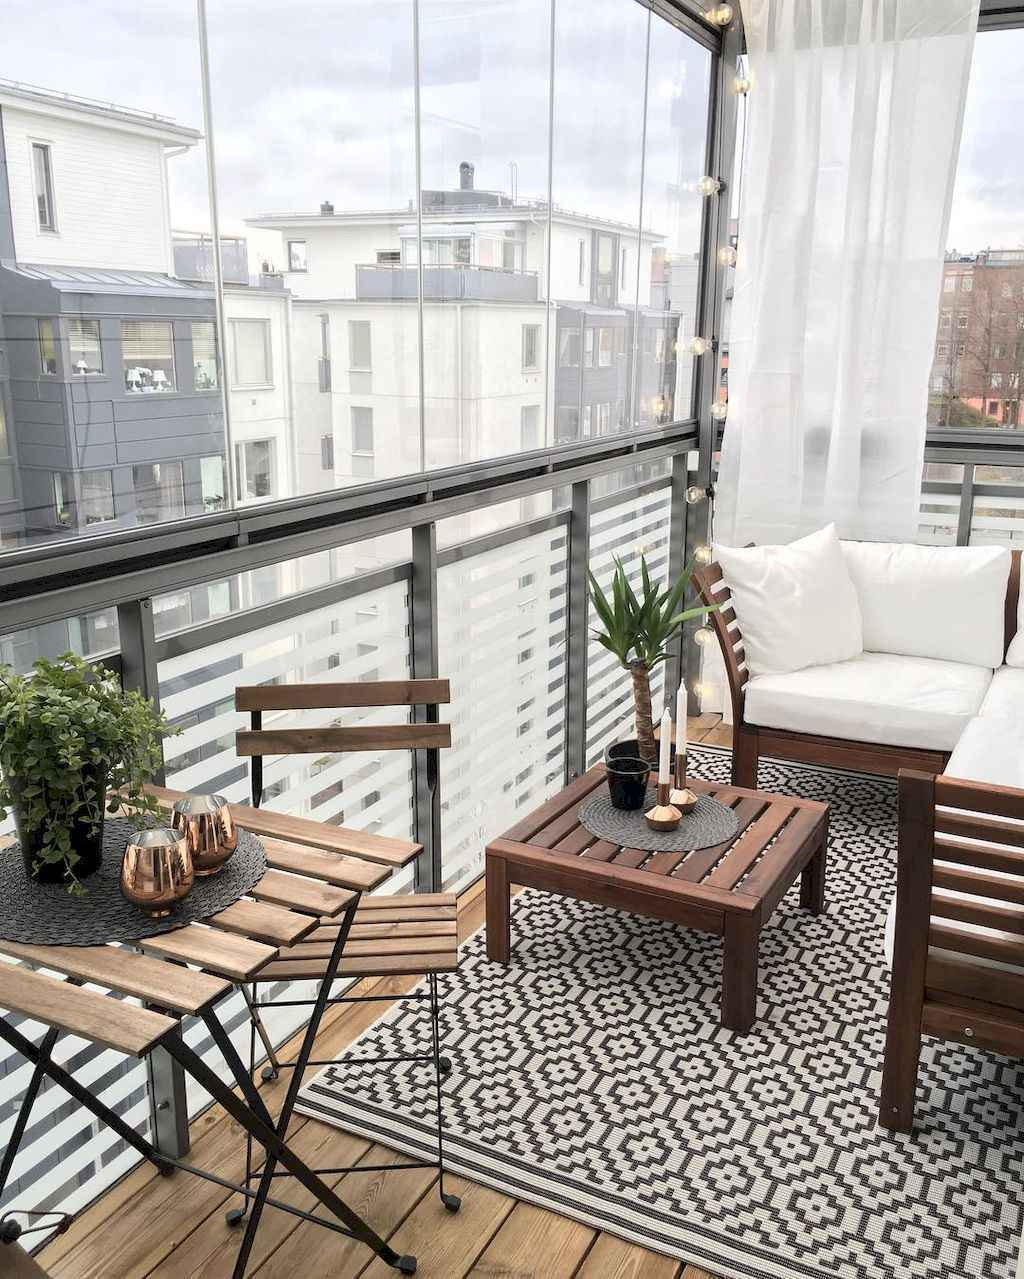 50 Affordable Small First Apartment Balcony Decor Ideas - Roomadness.com